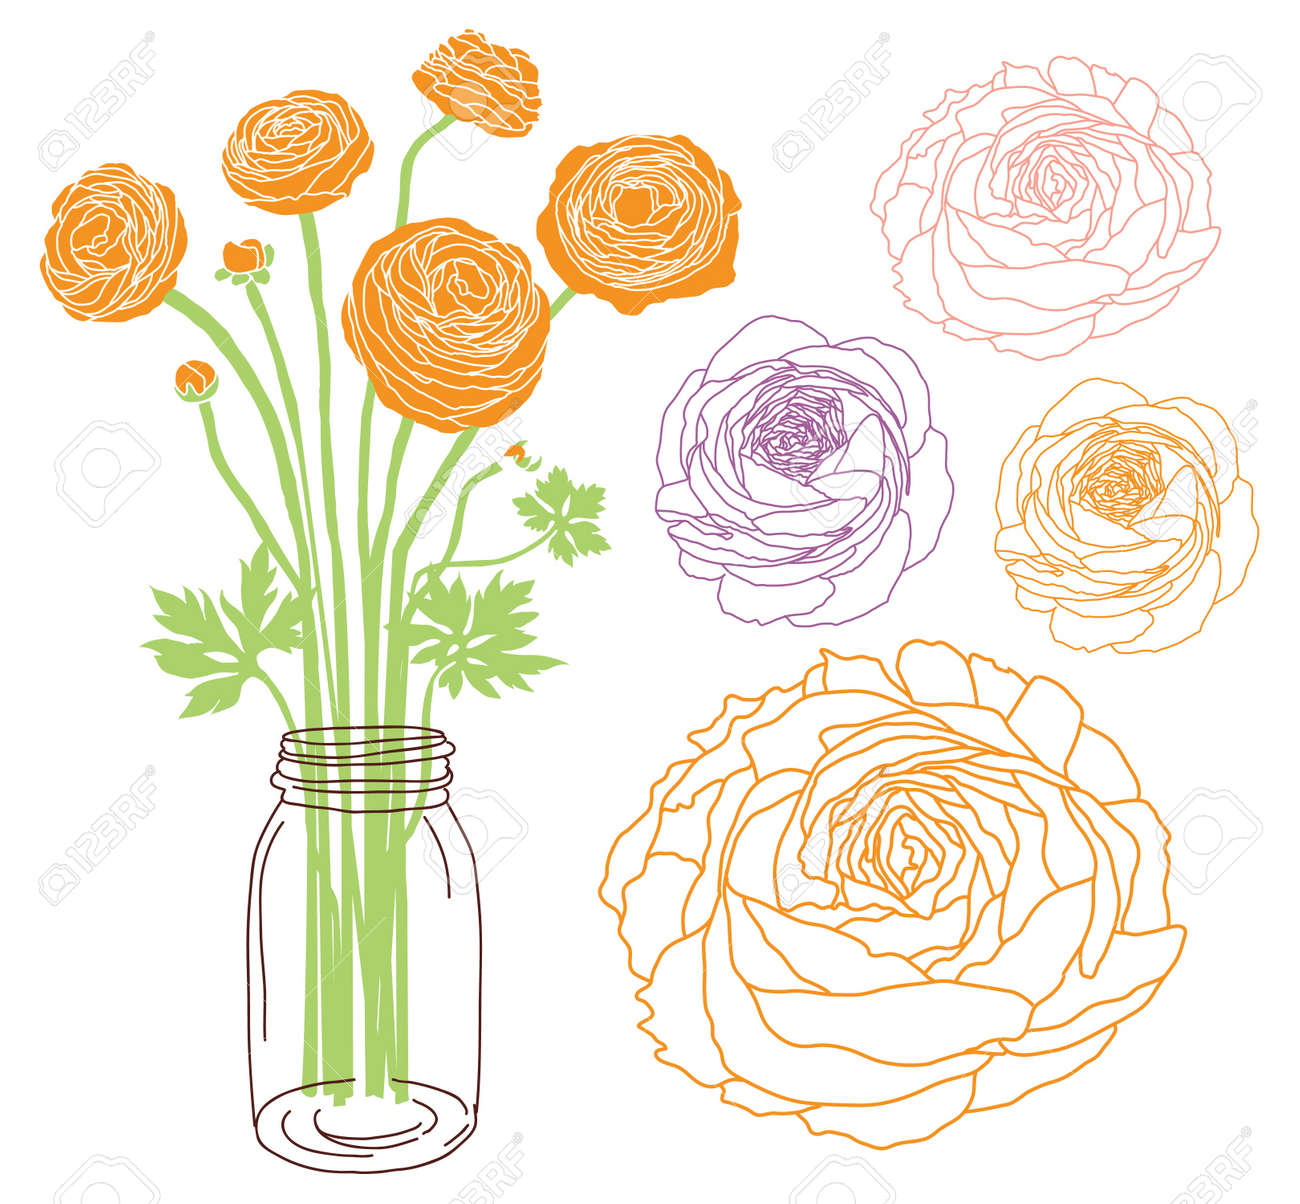 Ranunculus Flower Bouquet In A Jar Royalty Free Cliparts Vectors And Stock Illustration Image 20273703